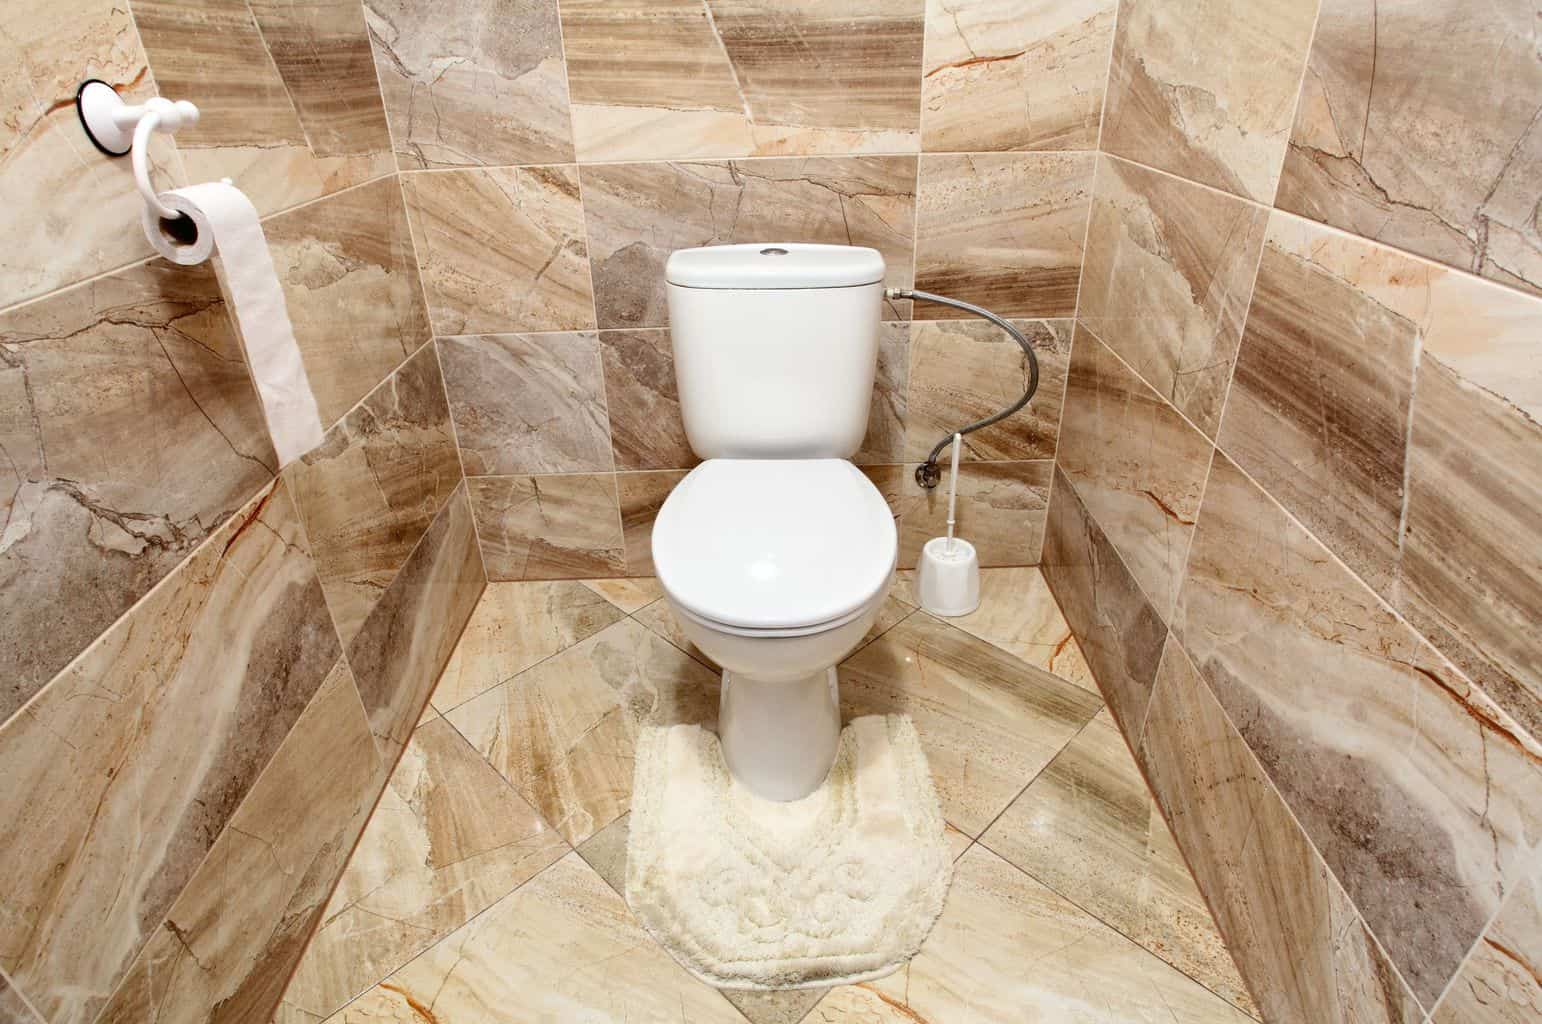 If You Want Your Bathroom Floor To Be Unique, Be Sure To Make Sketches So  That The Professional Who Installs It Has An Idea Of What You Have In Mind. Part 39